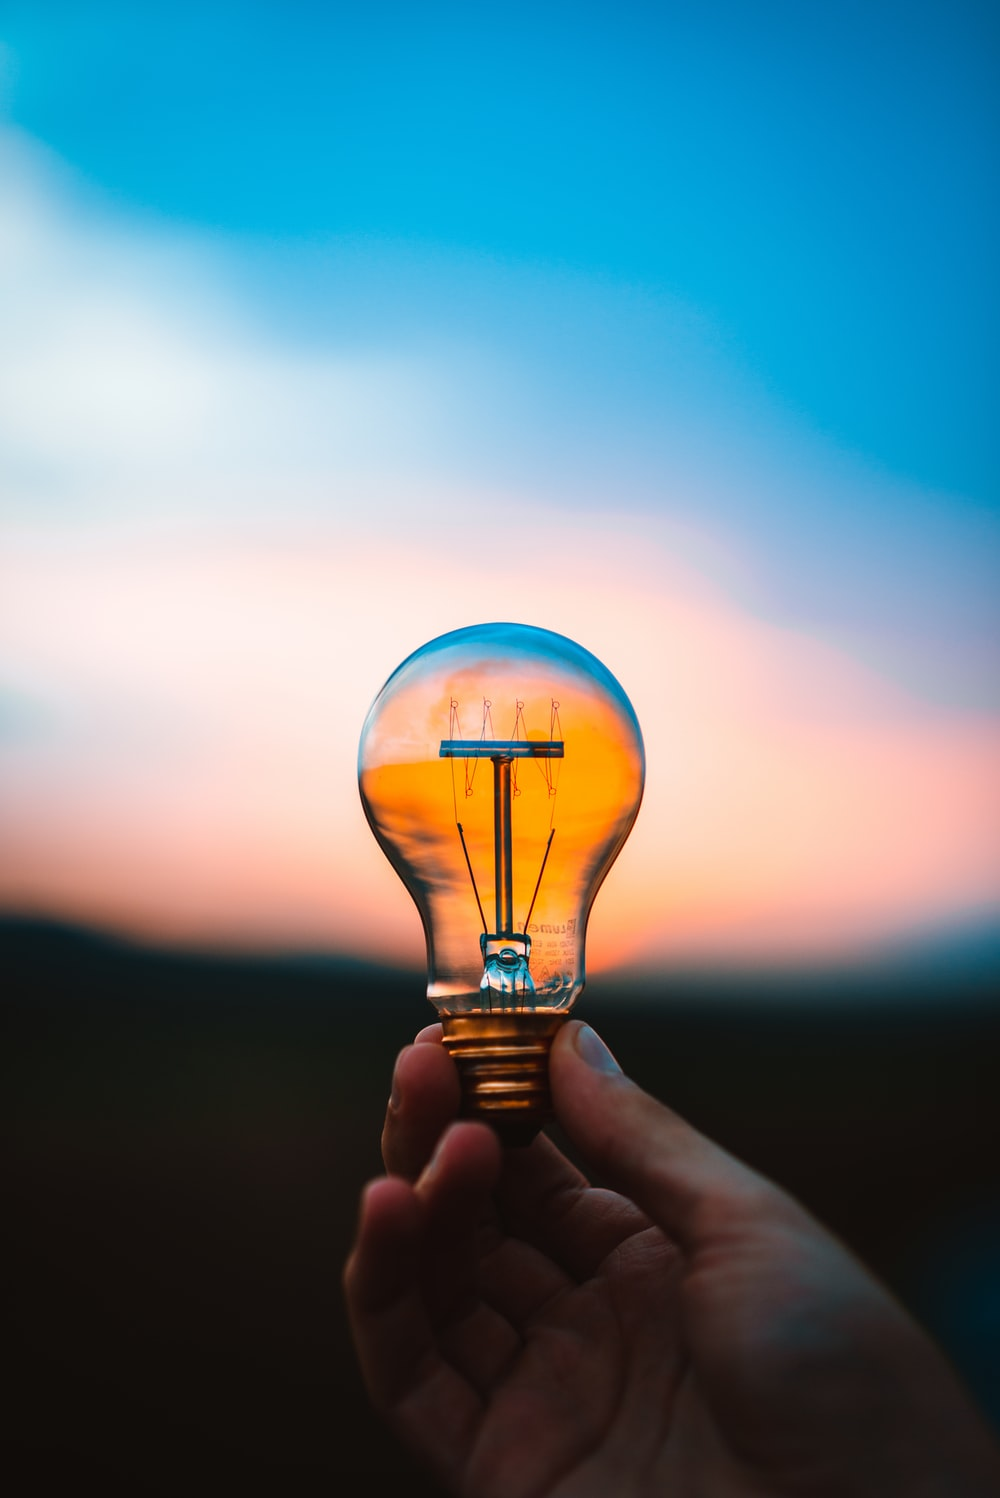 person holding bulb